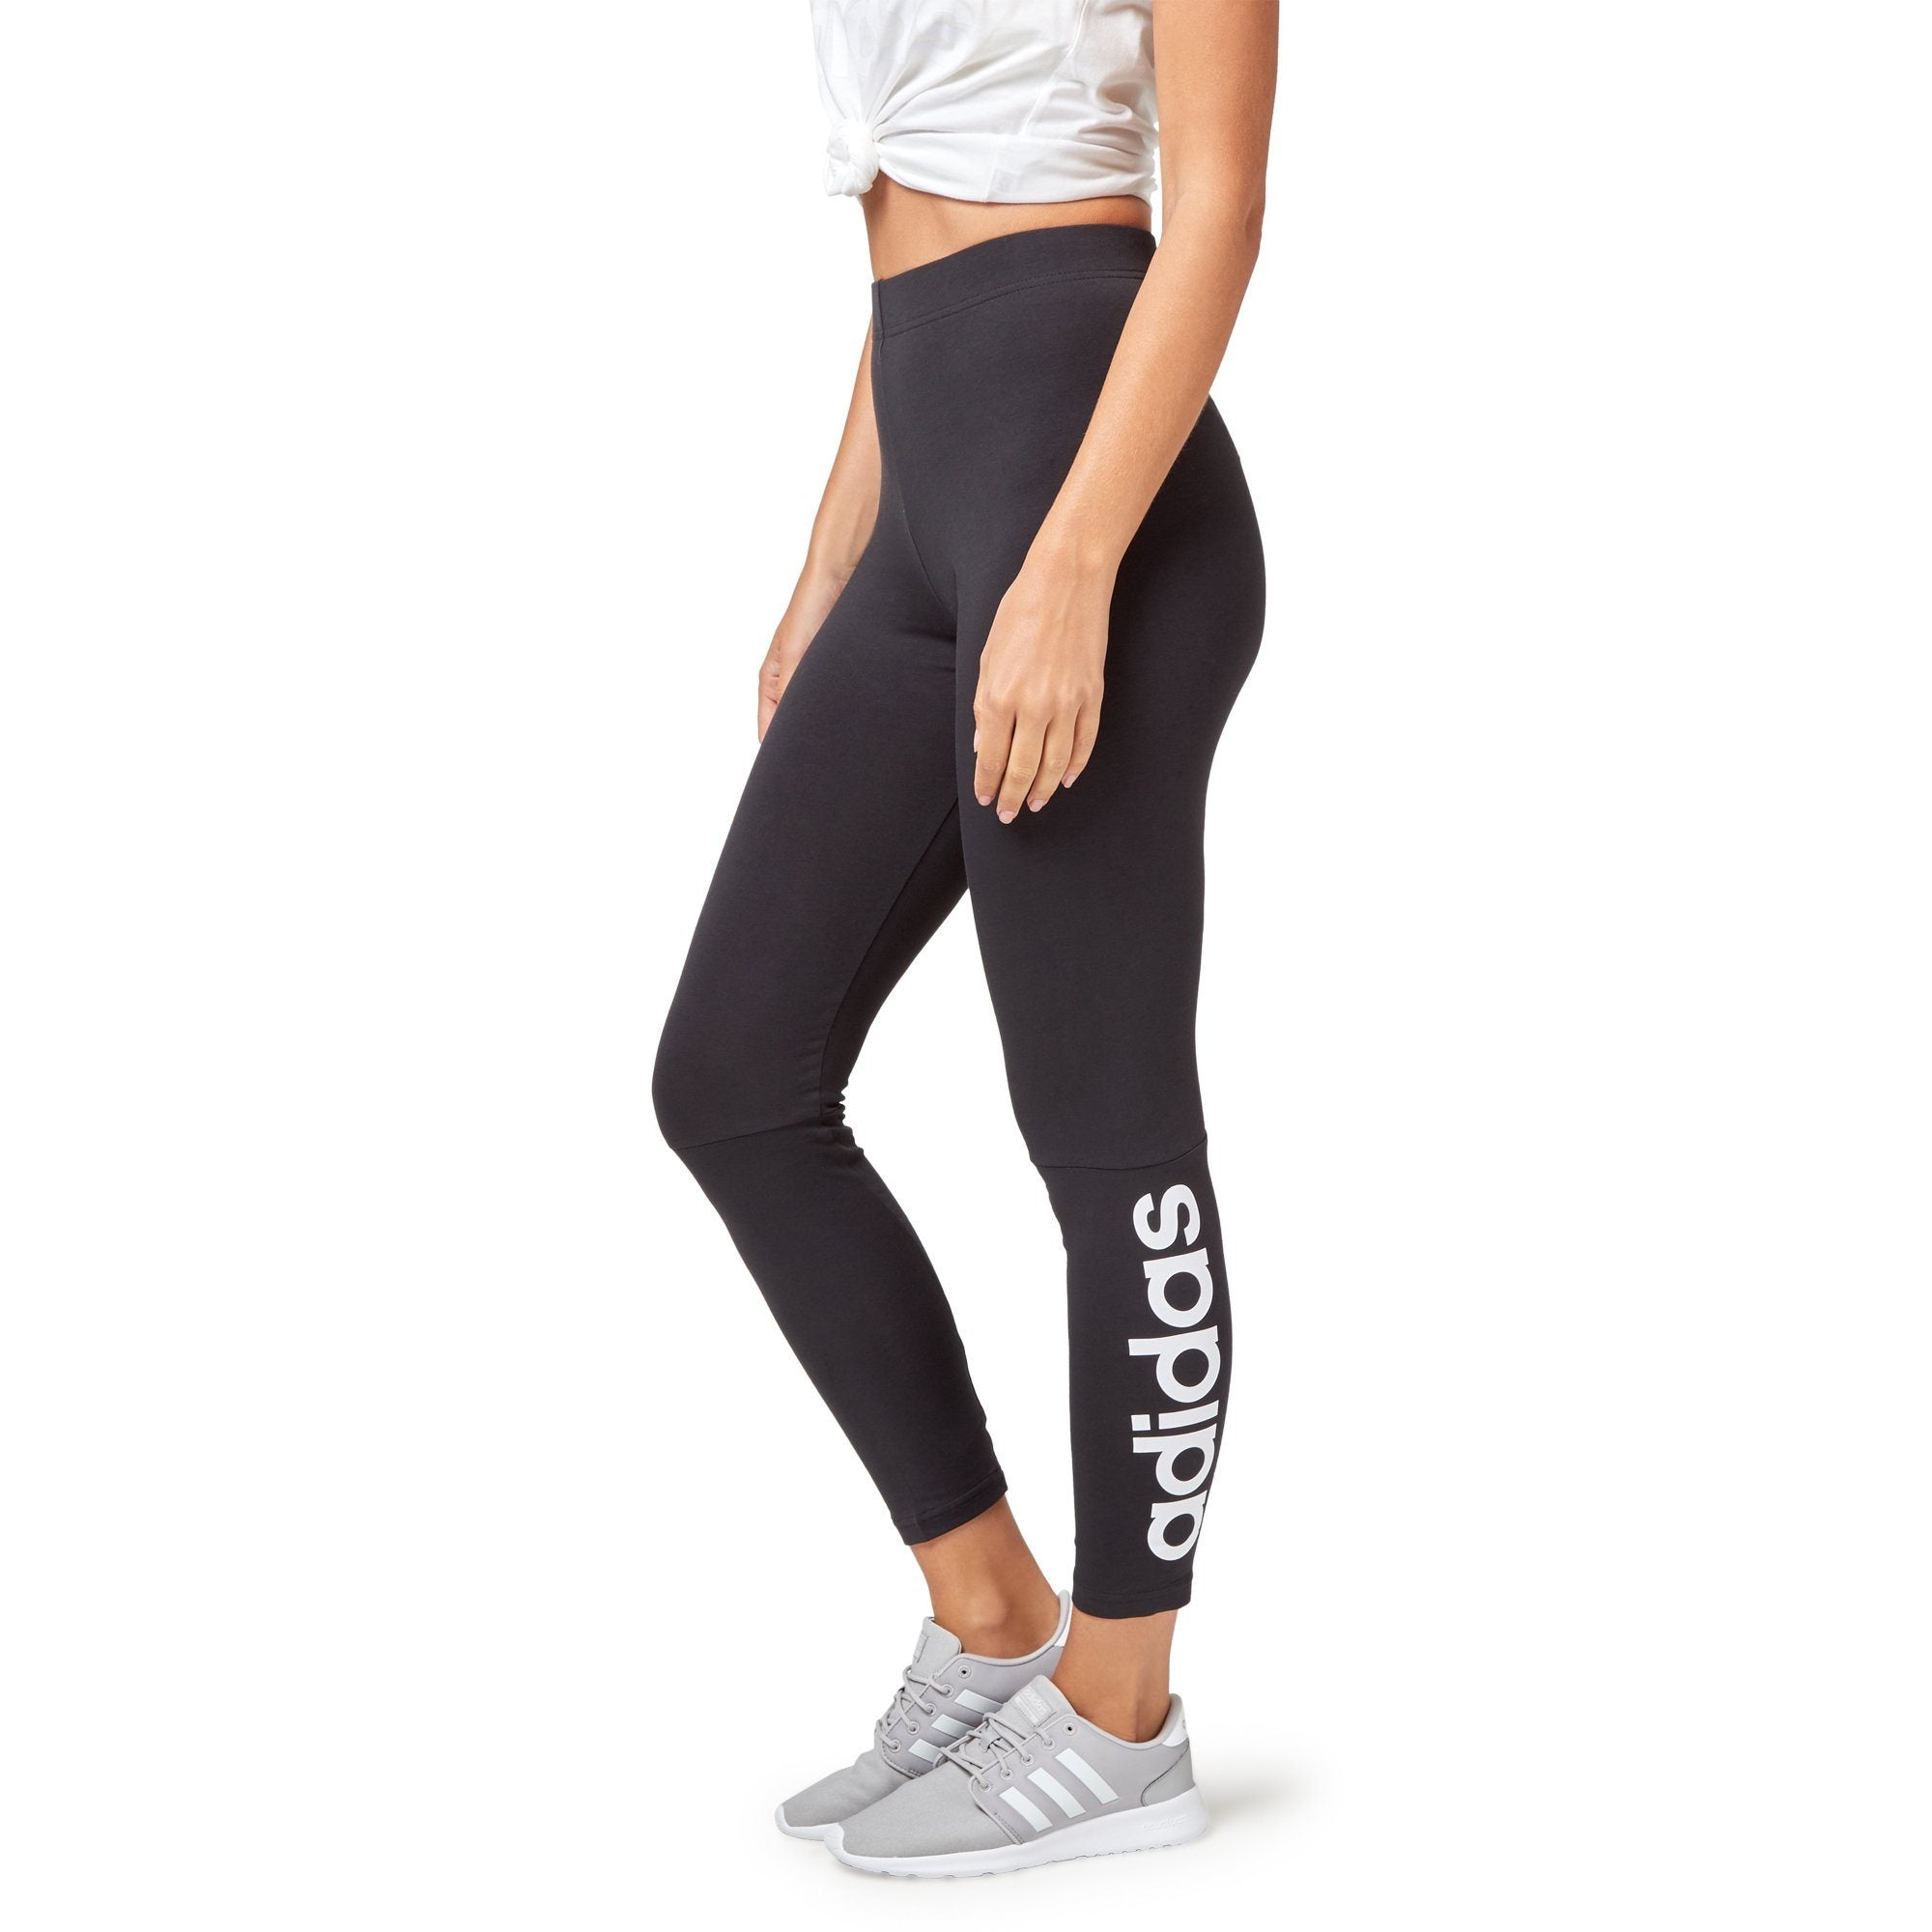 Adidas Women's Essentials Linear Tights - Black/White Apparel Adidas